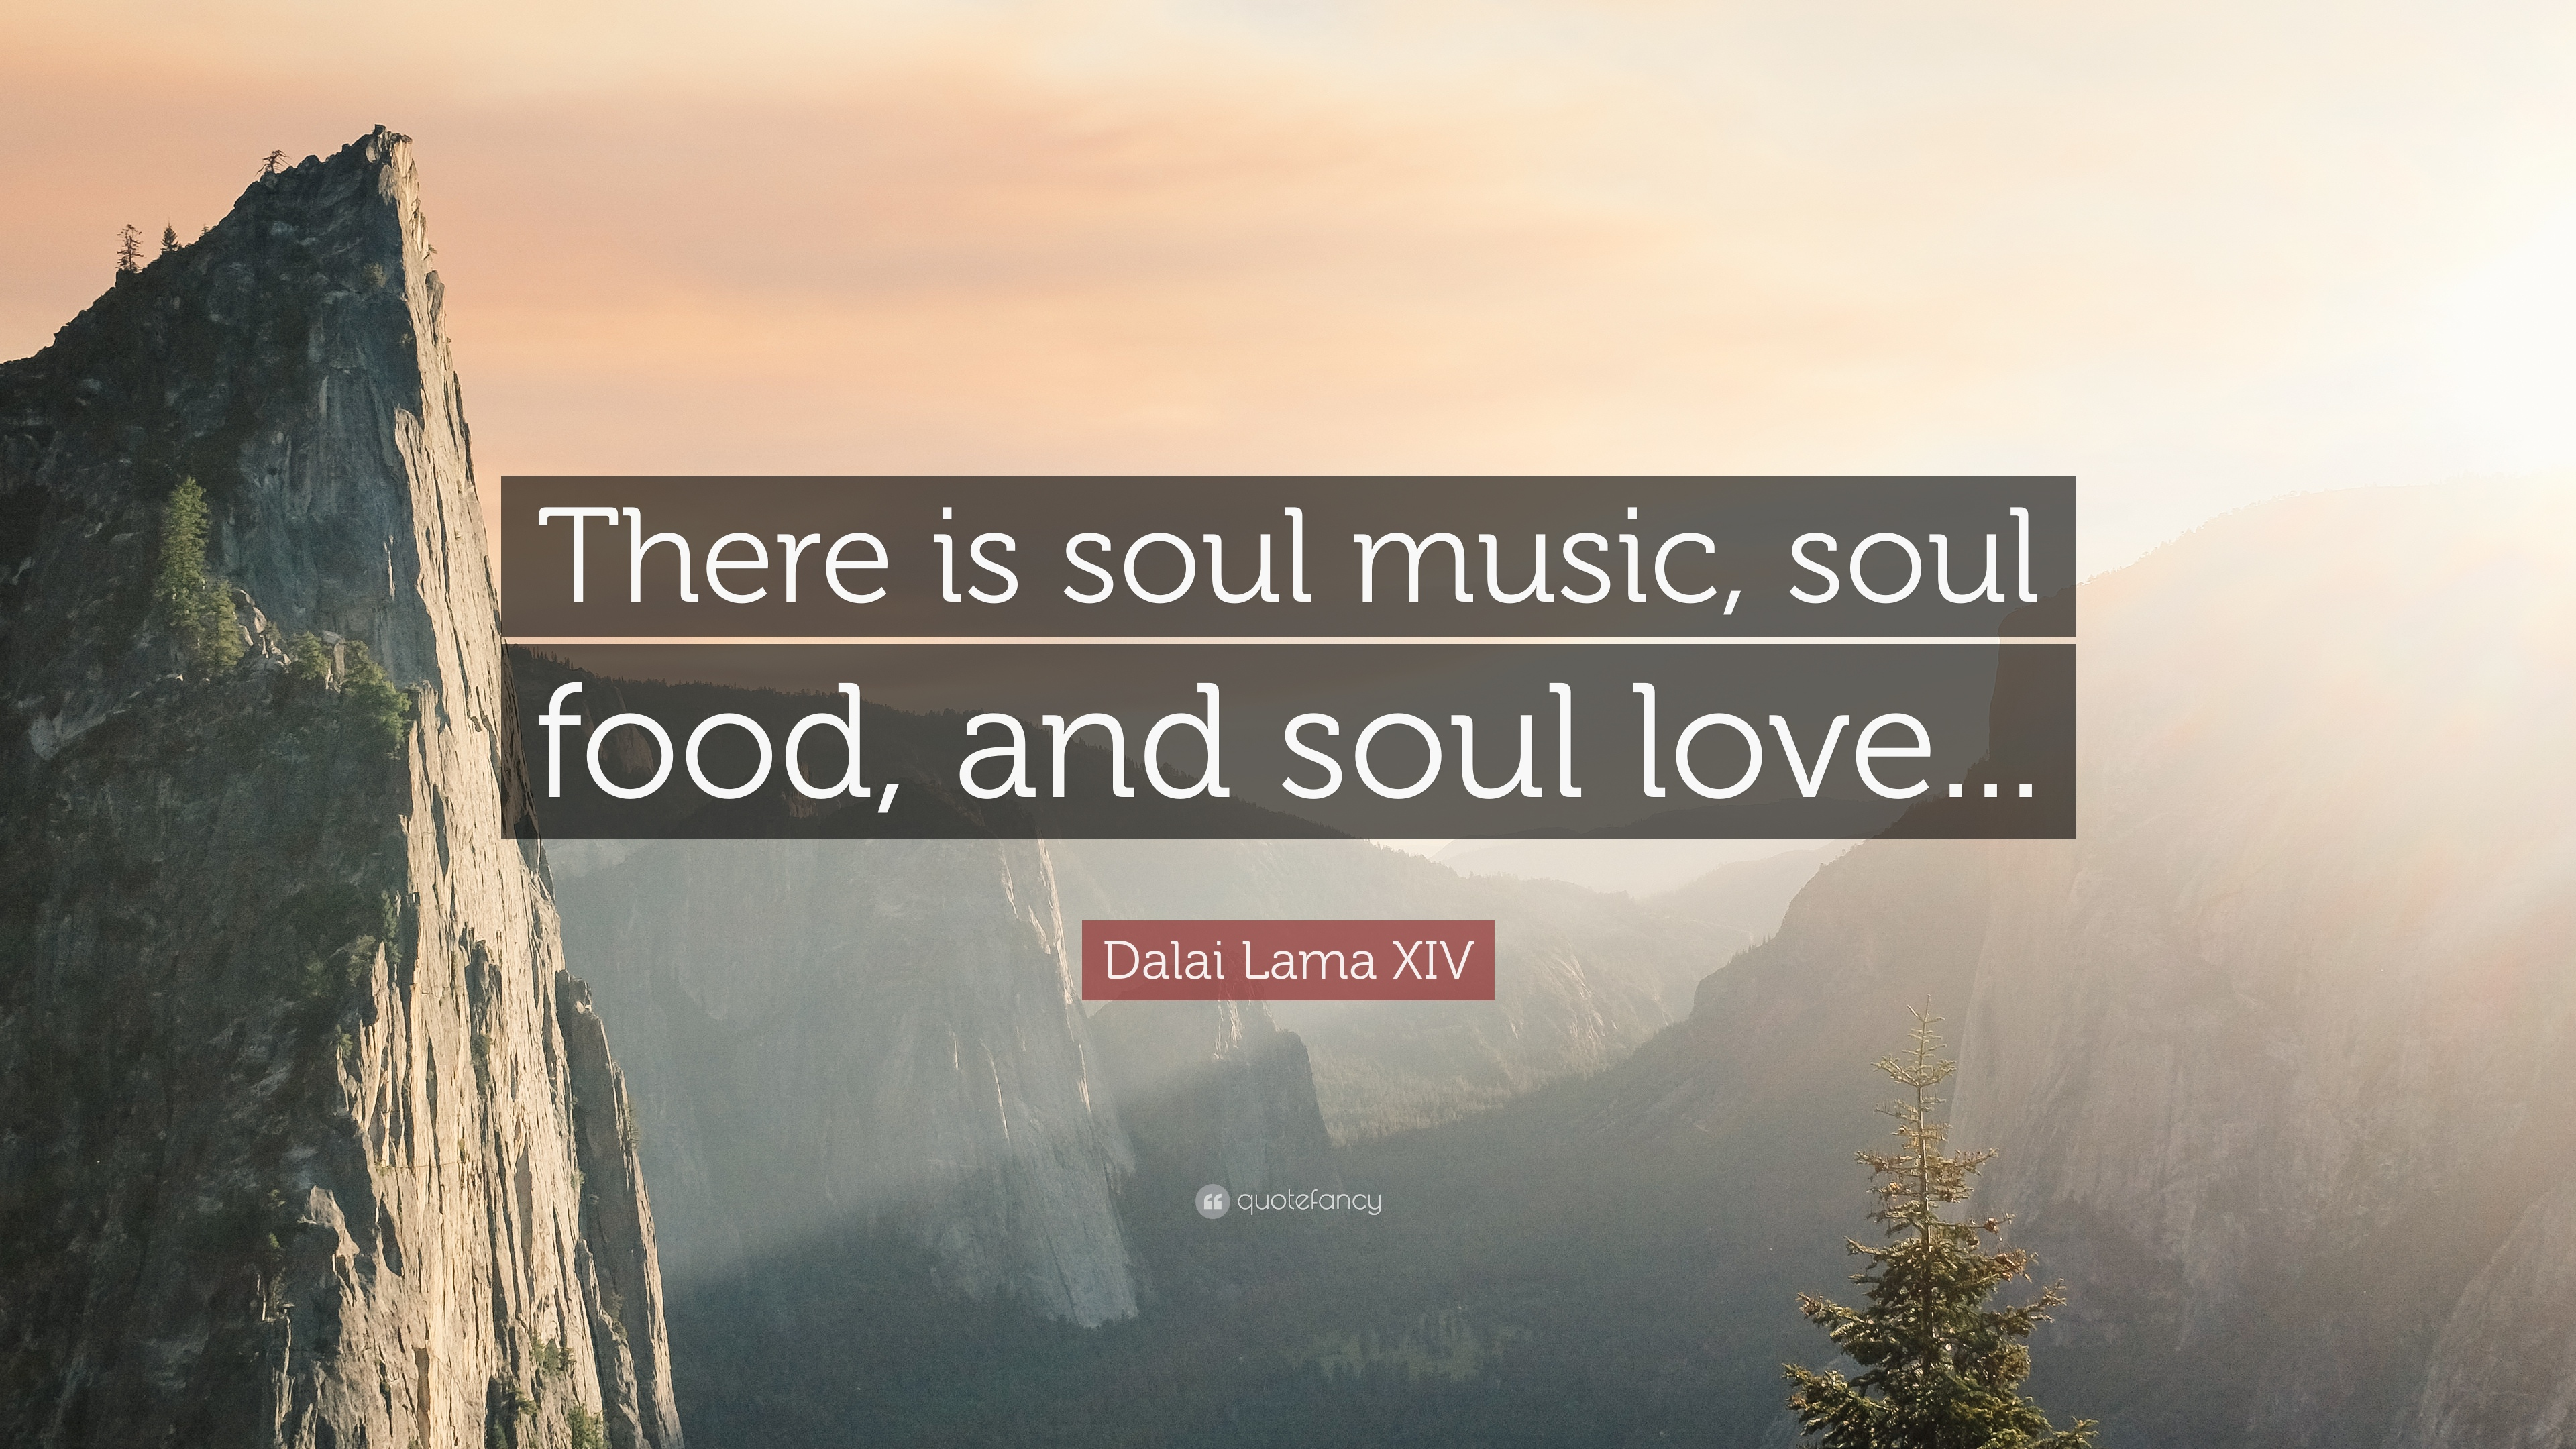 Dalai Lama Xiv Quote There Is Soul Music Soul Food And Soul Love